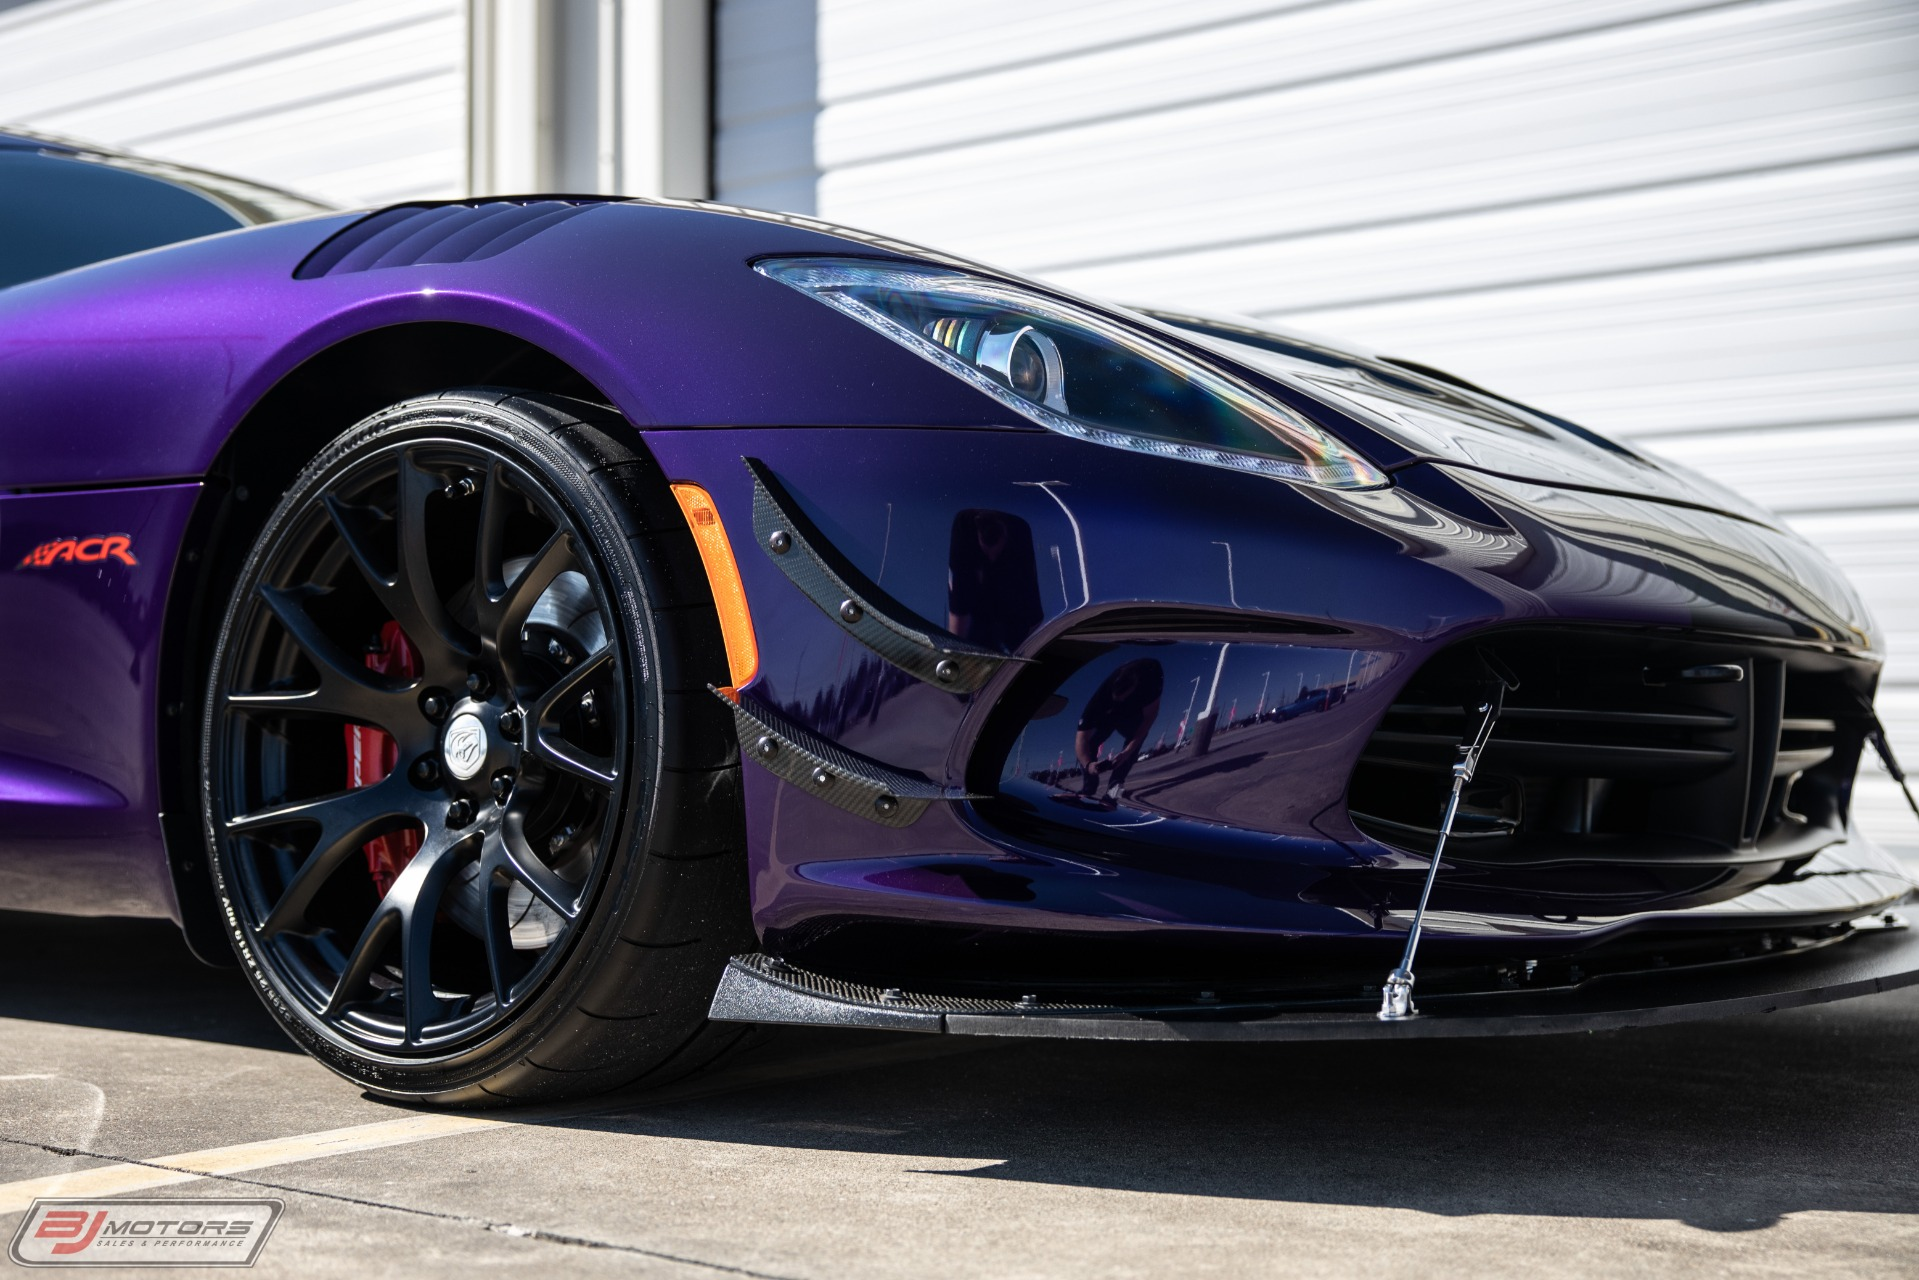 Used-2016-Dodge-Viper-ACR-Extreme